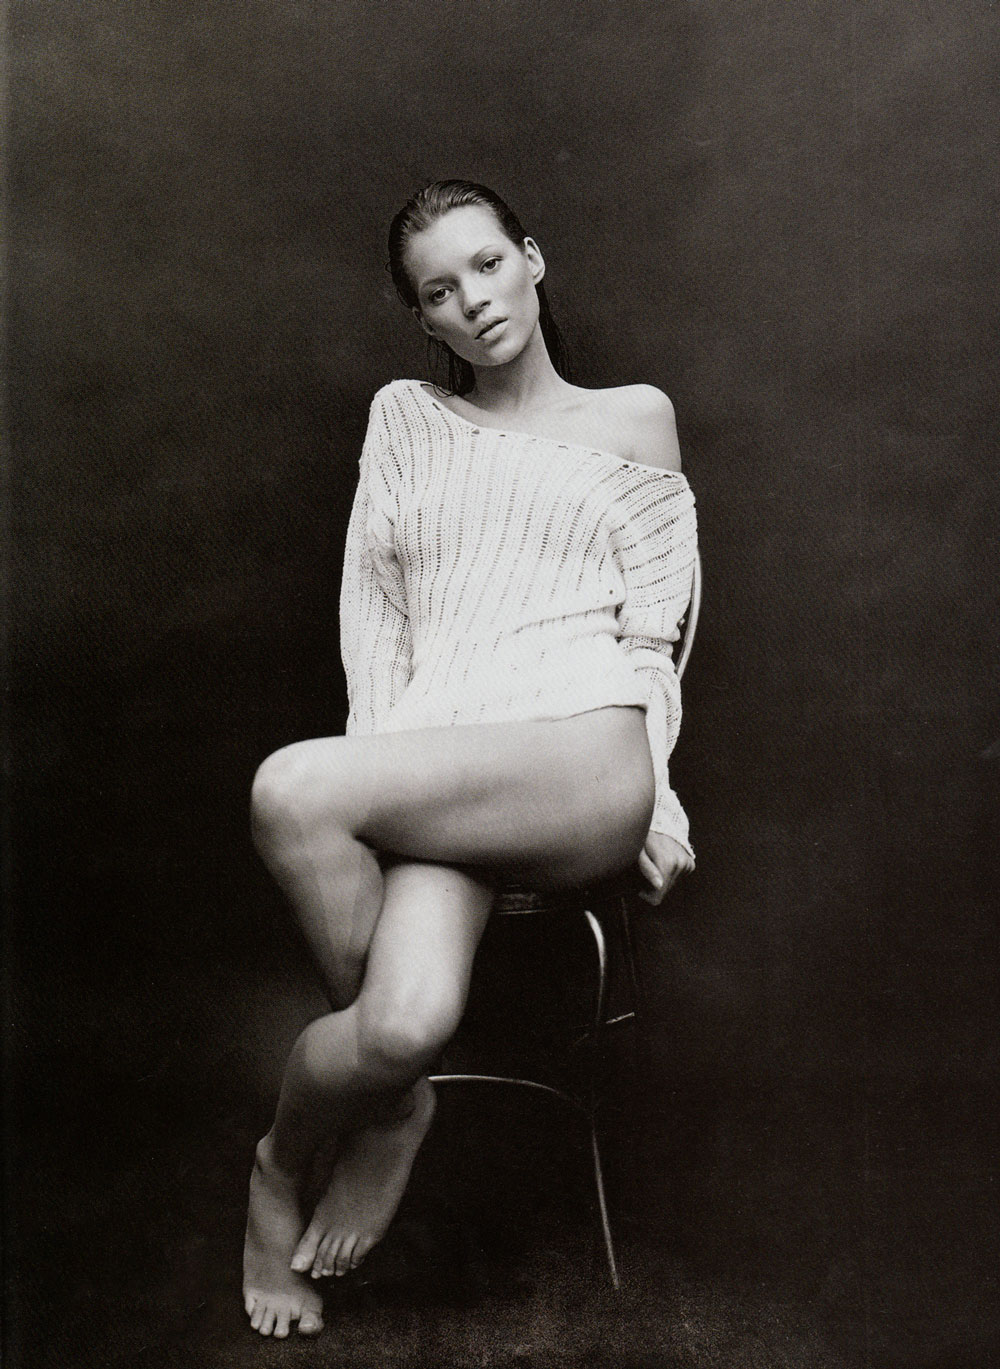 Kate Moss in Body of evidence | Harper's Bazaar US July 1993 (photography: Patrick Demarchelier)